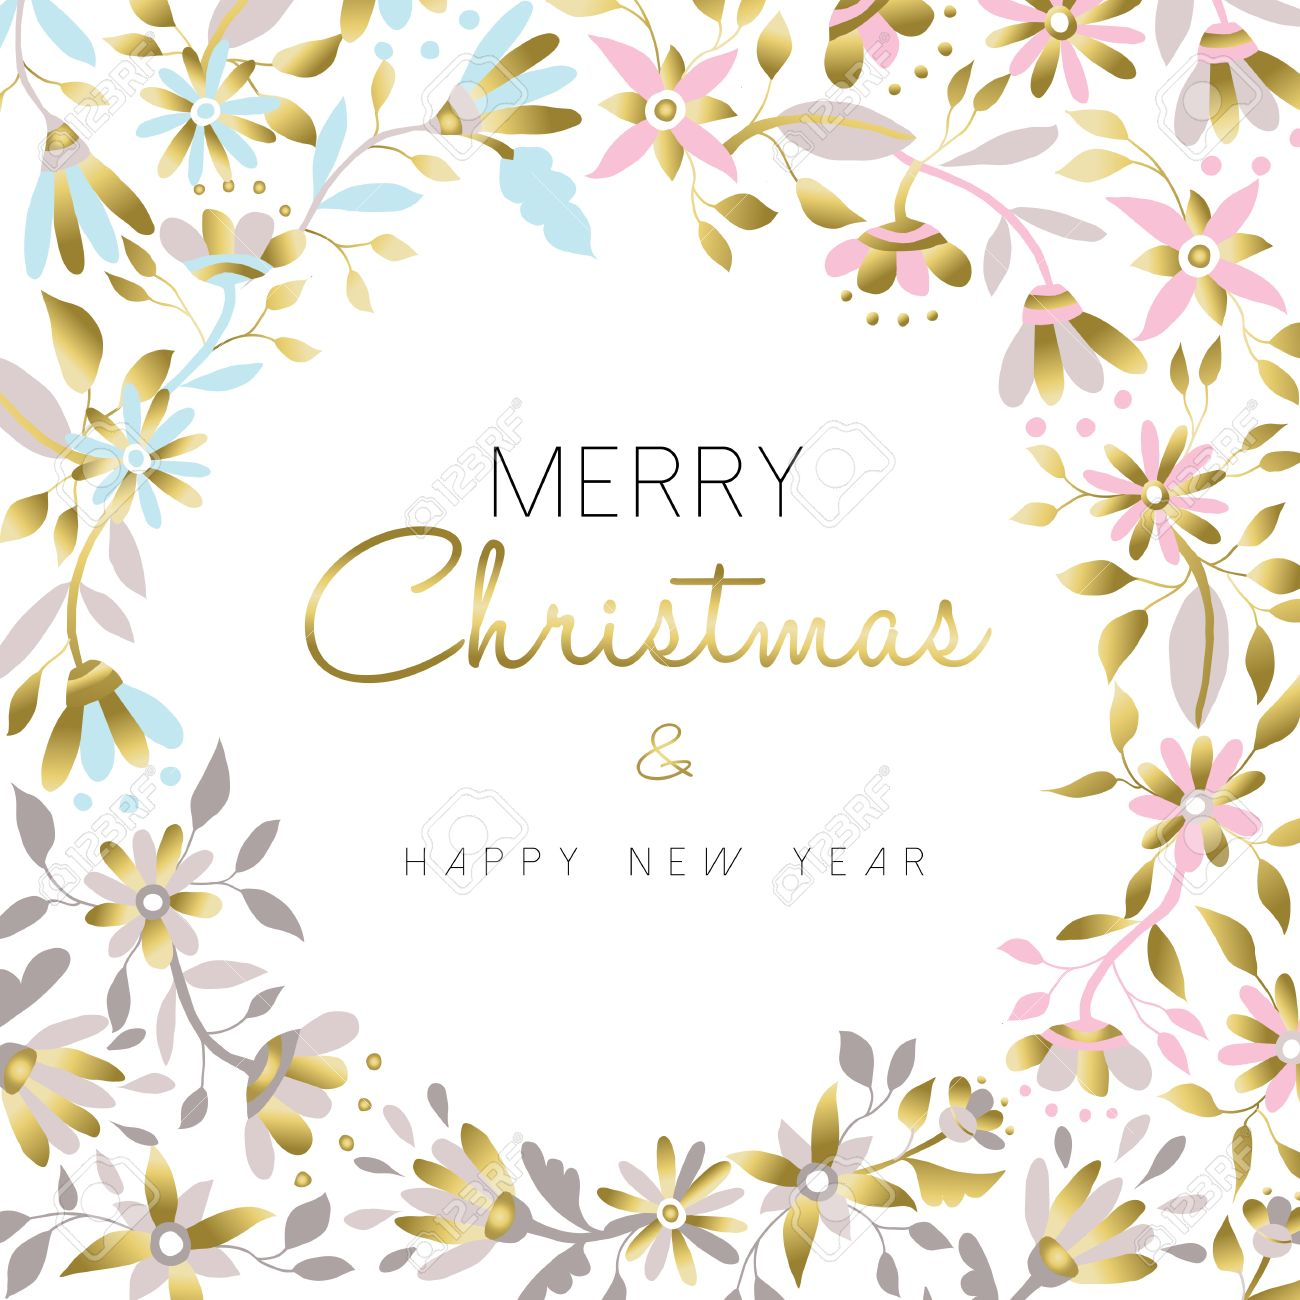 Merry Christmas And Happy New Year Gold Flower Christmas Decoration ...